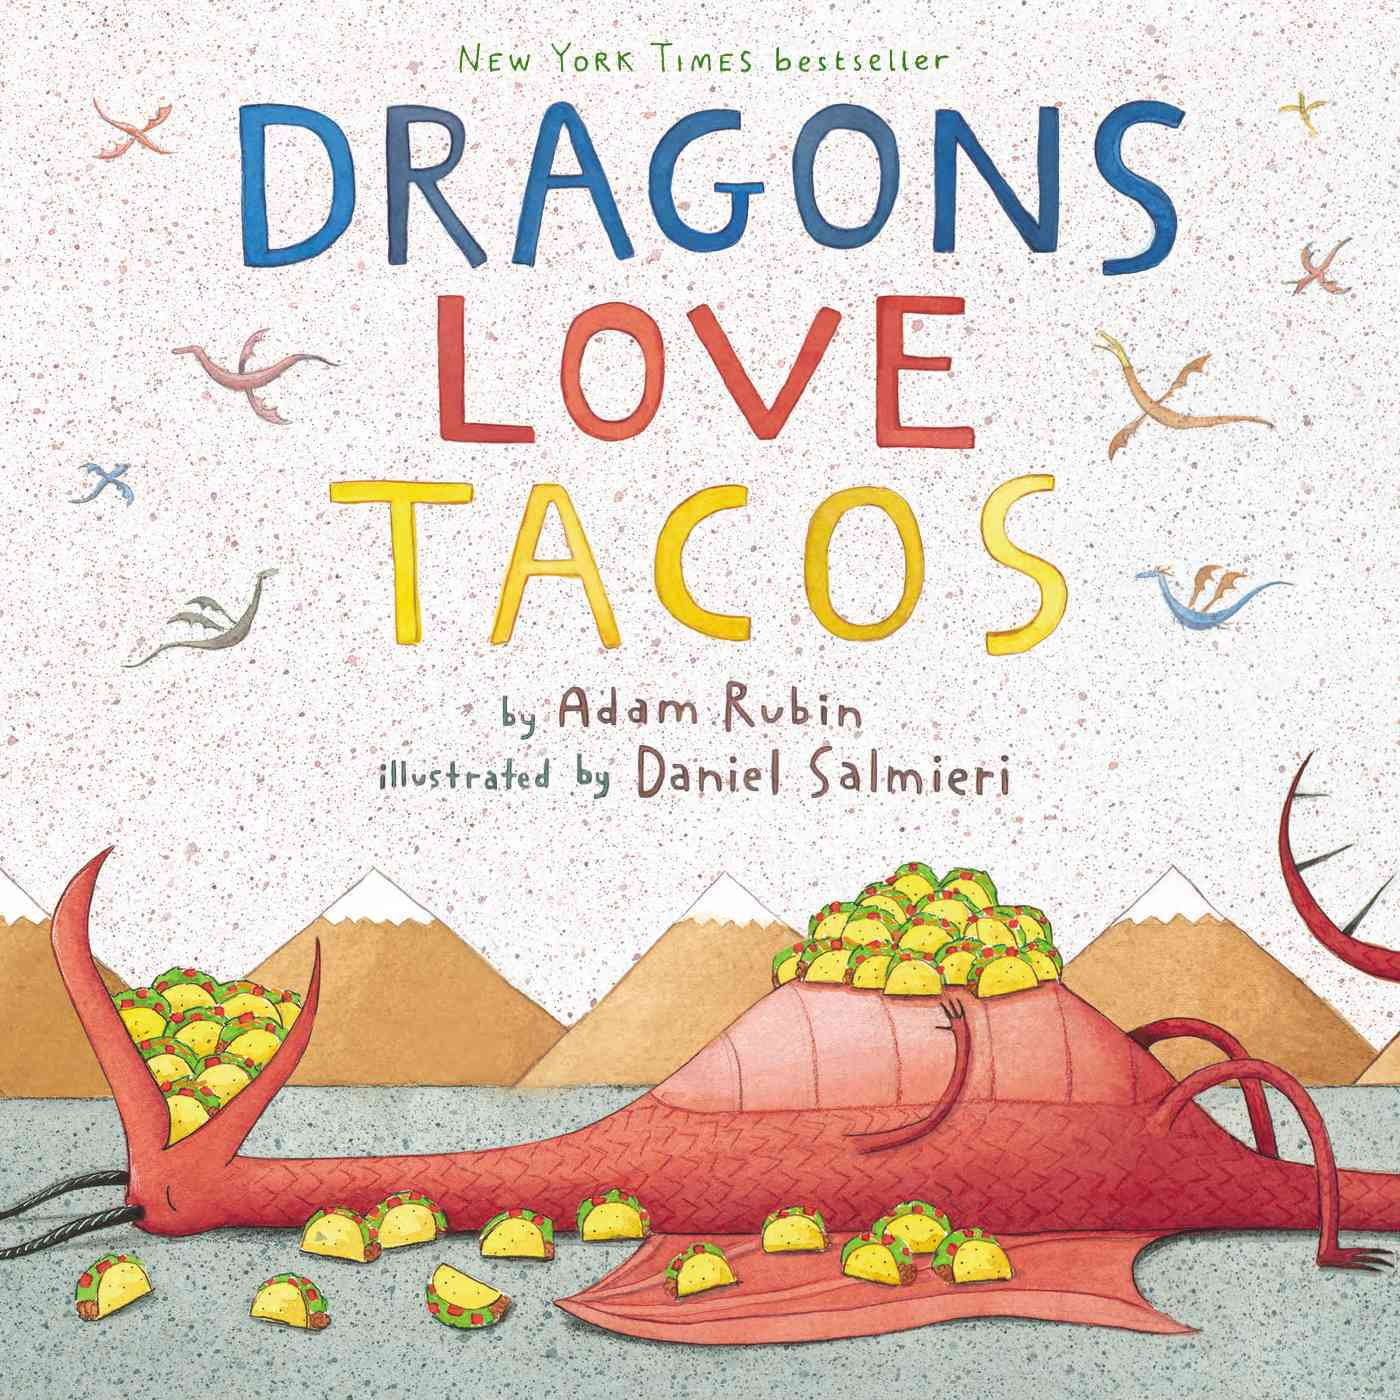 Dragons Love Tacos (Hardcover)